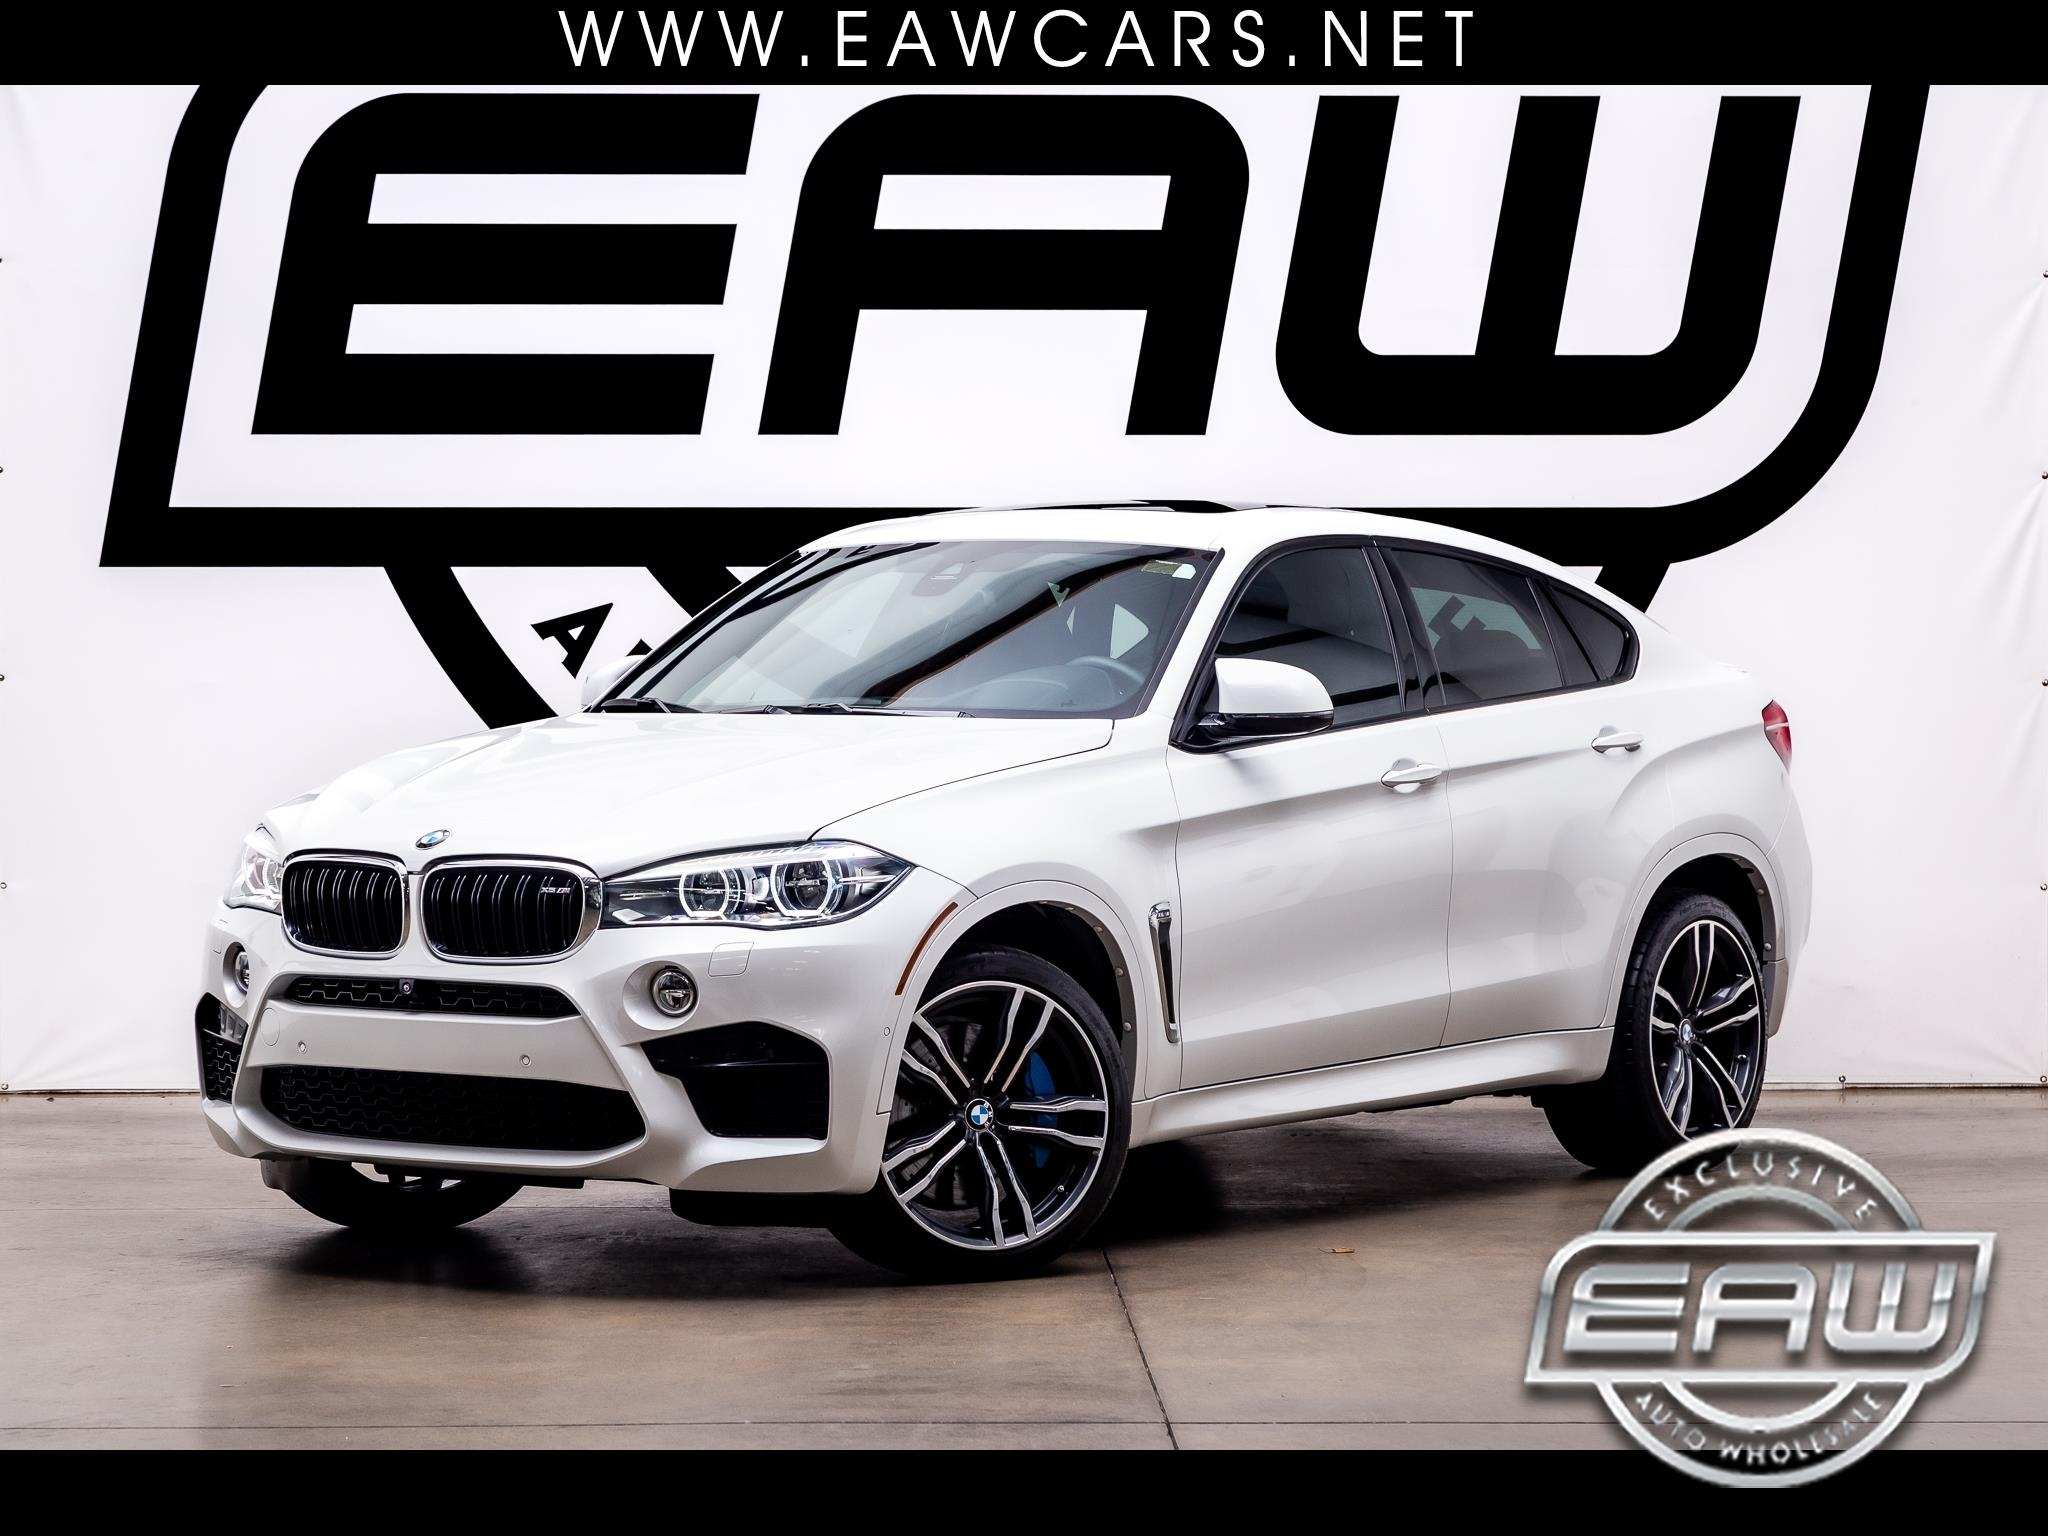 BMW X6 M Sports Activity Coupe 2017